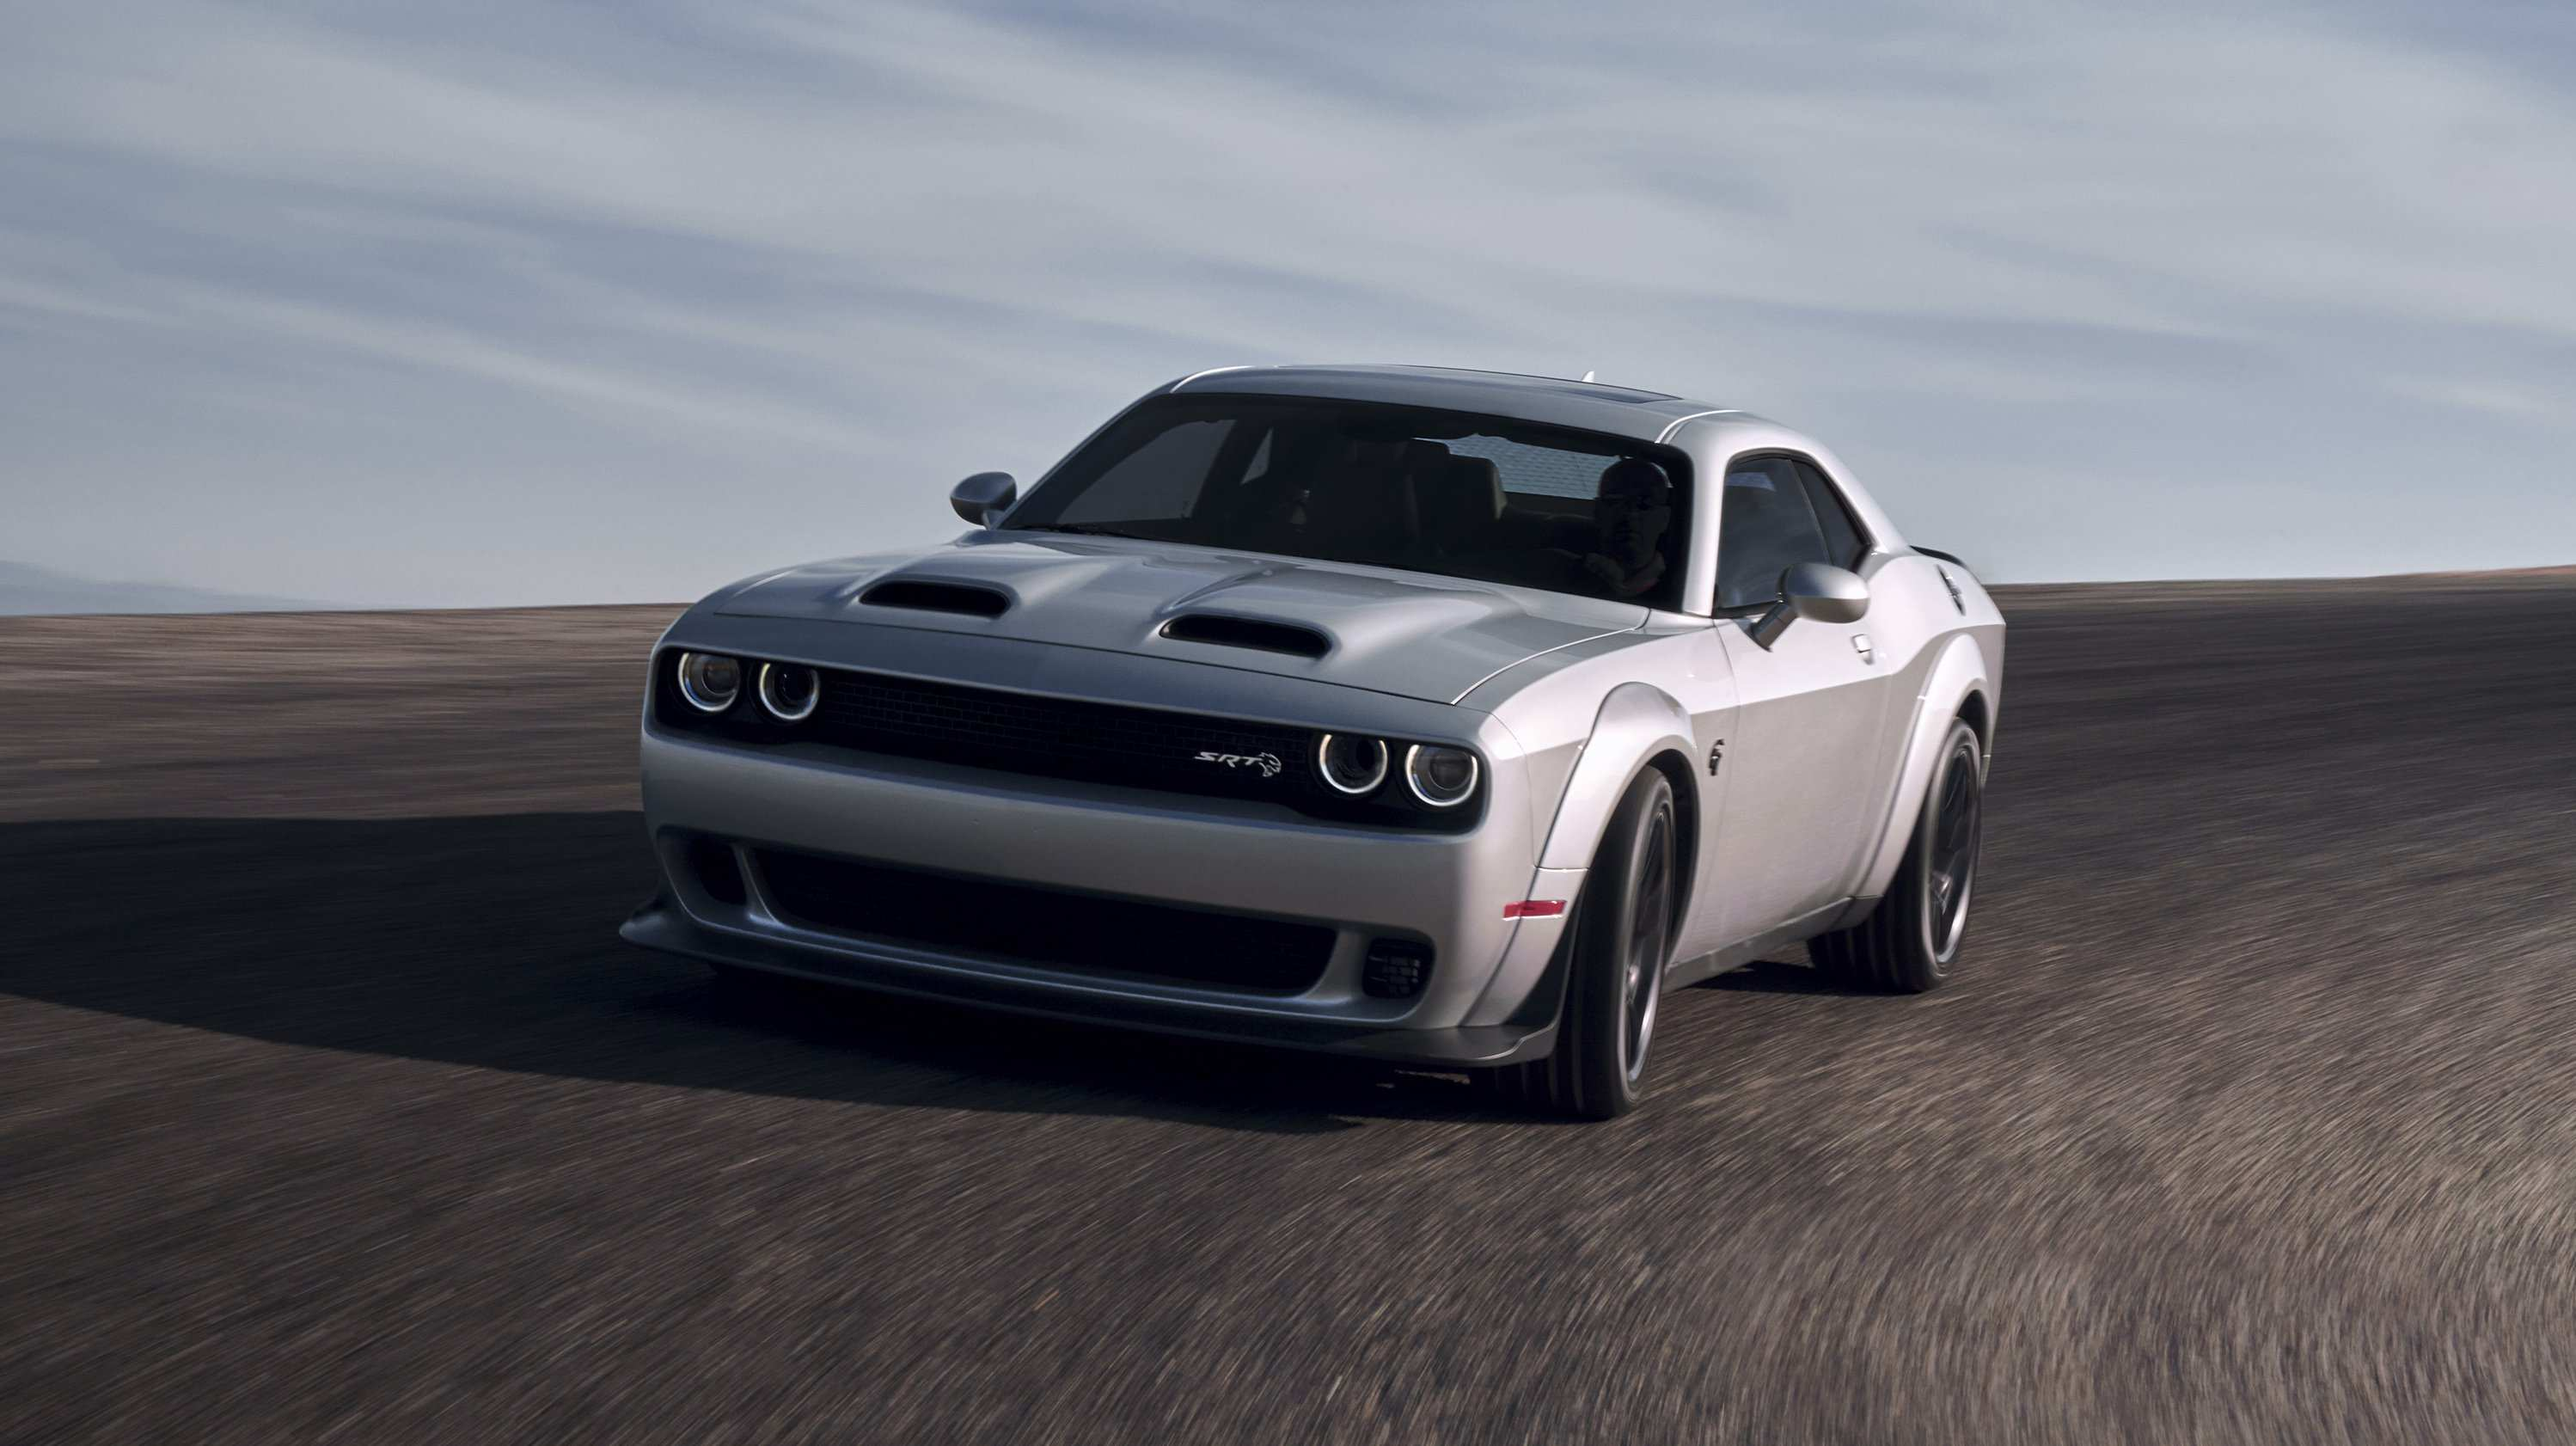 55 Best 2019 Challenger Srt8 Hellcat Release Date And Concept